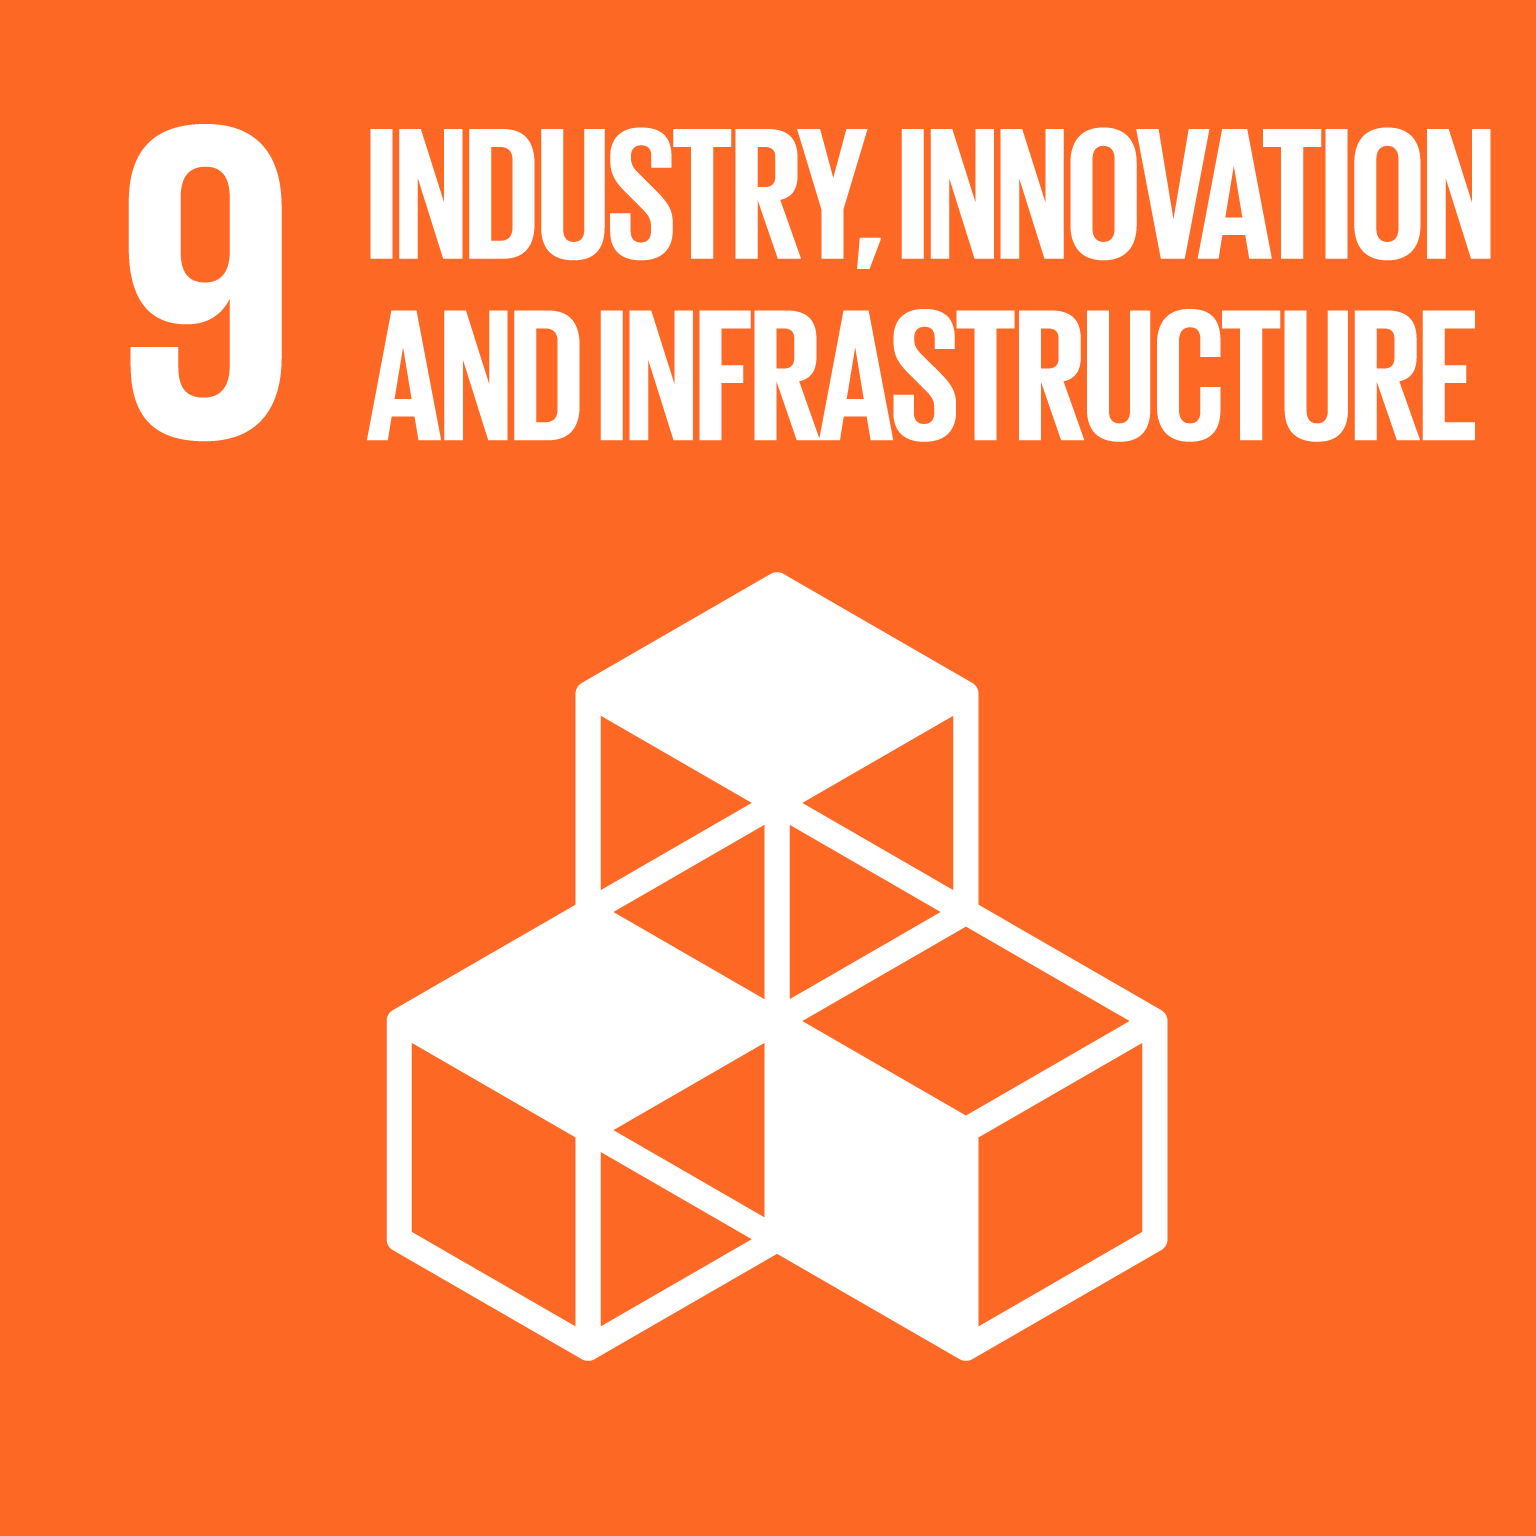 The SDGs icons of INDUSTRY, INNOVATION AND INFRASTRUCTURE